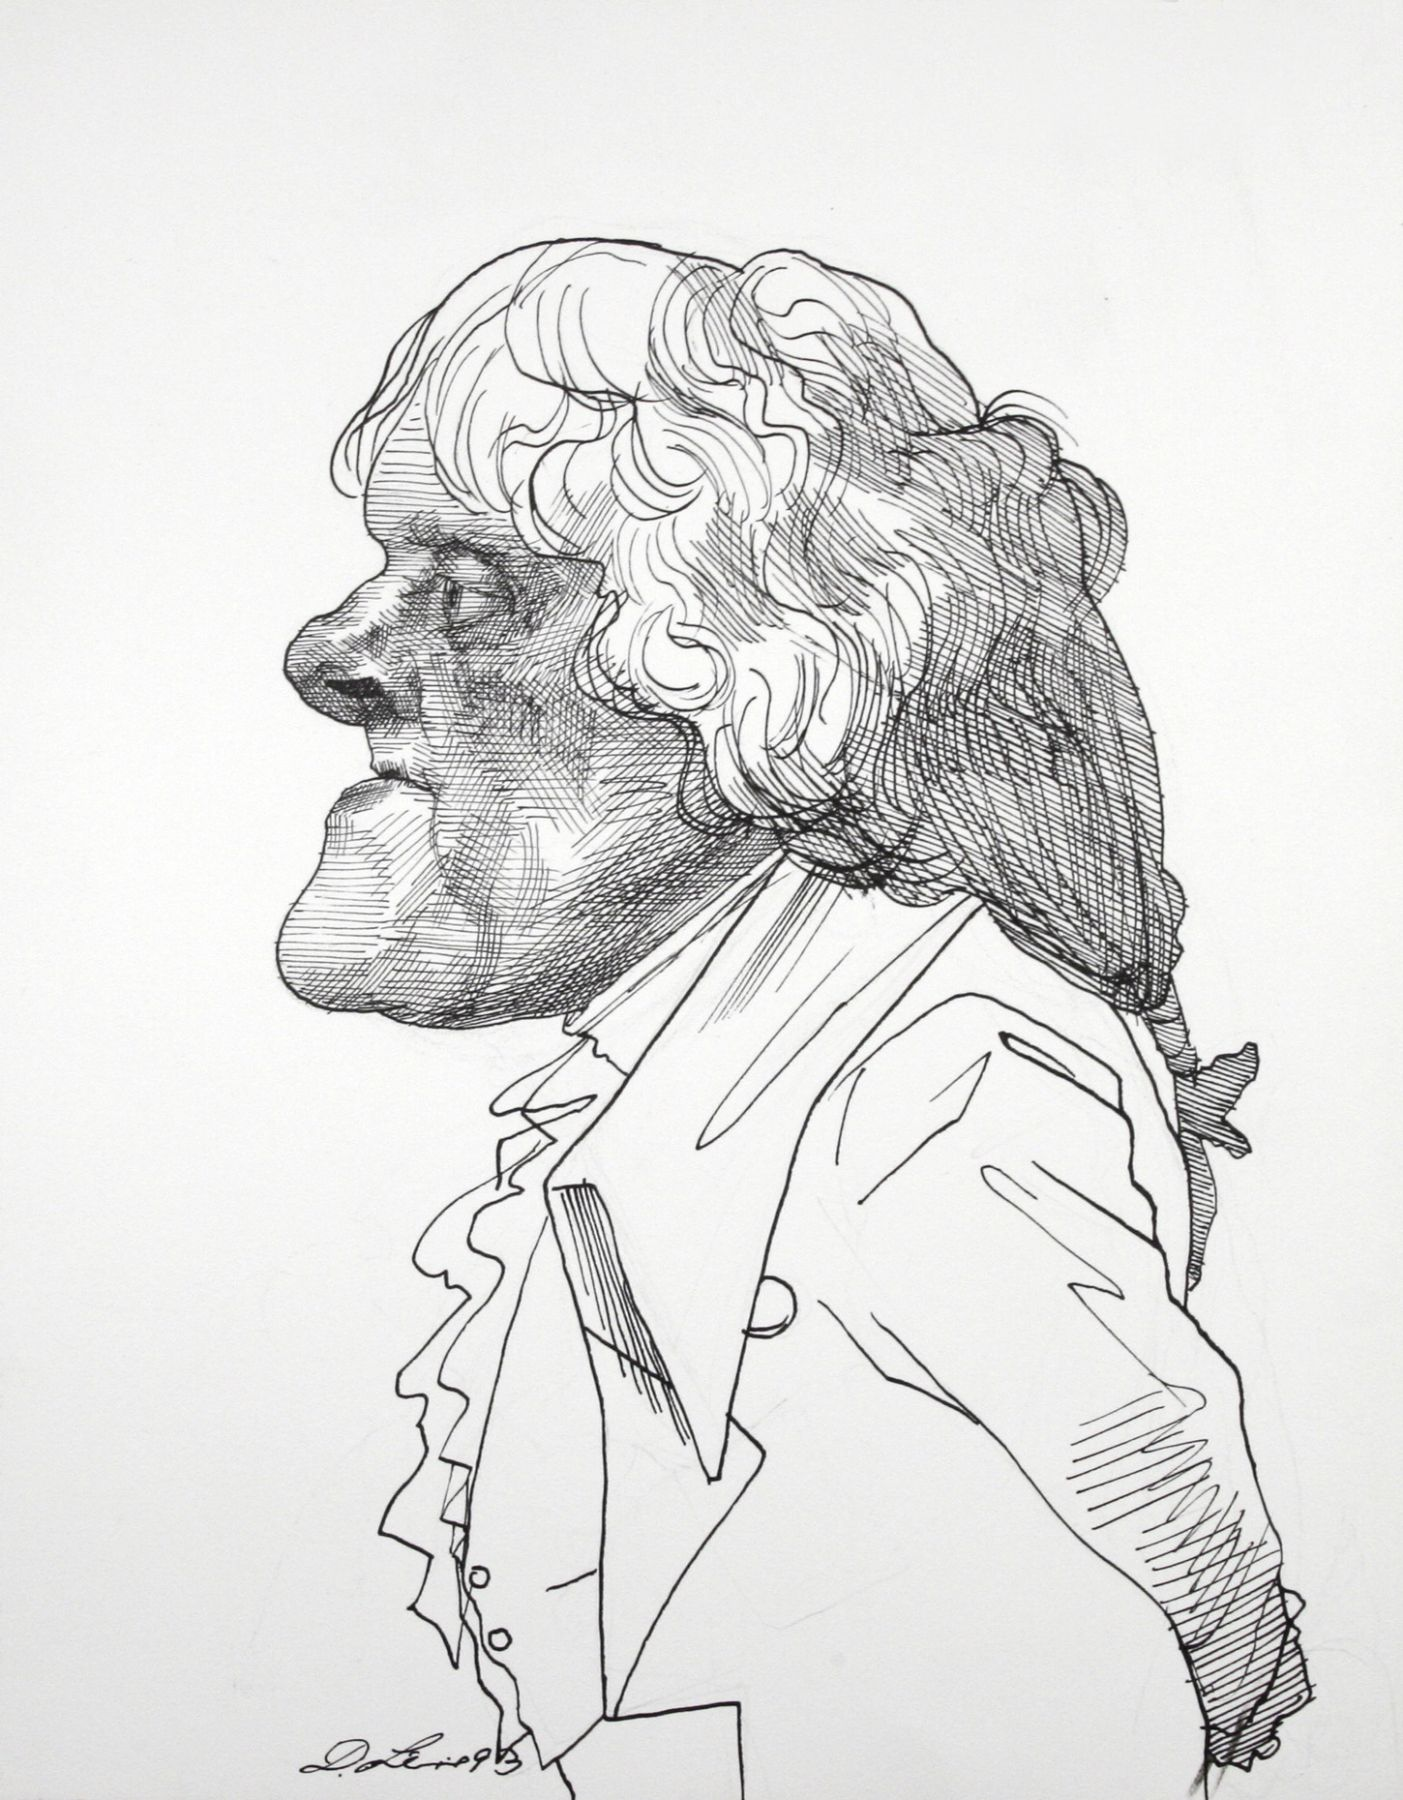 David Levine, Thomas Jefferson, 1993, ink on paper, 14 x 11 inches